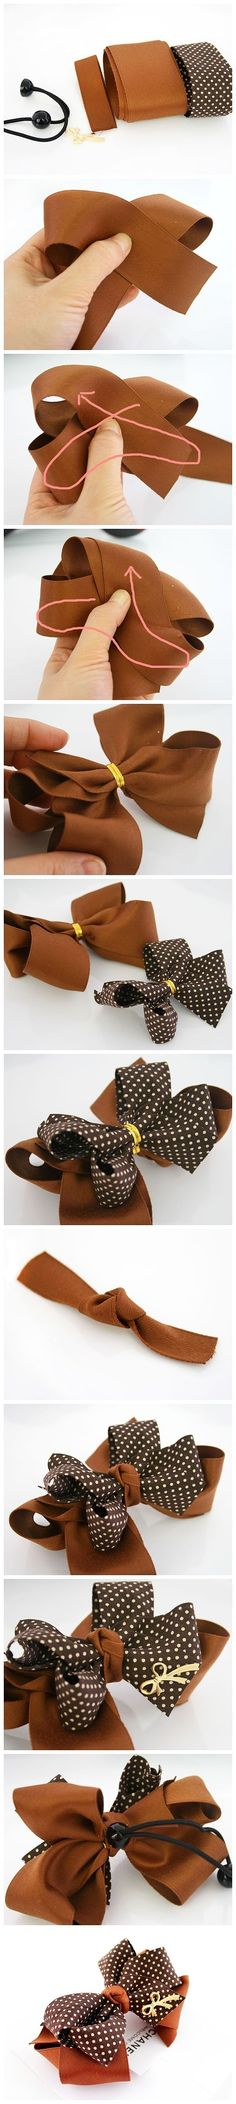 DIY Chanel Inspired Bow bows diy crafts home made easy crafts craft idea crafts…